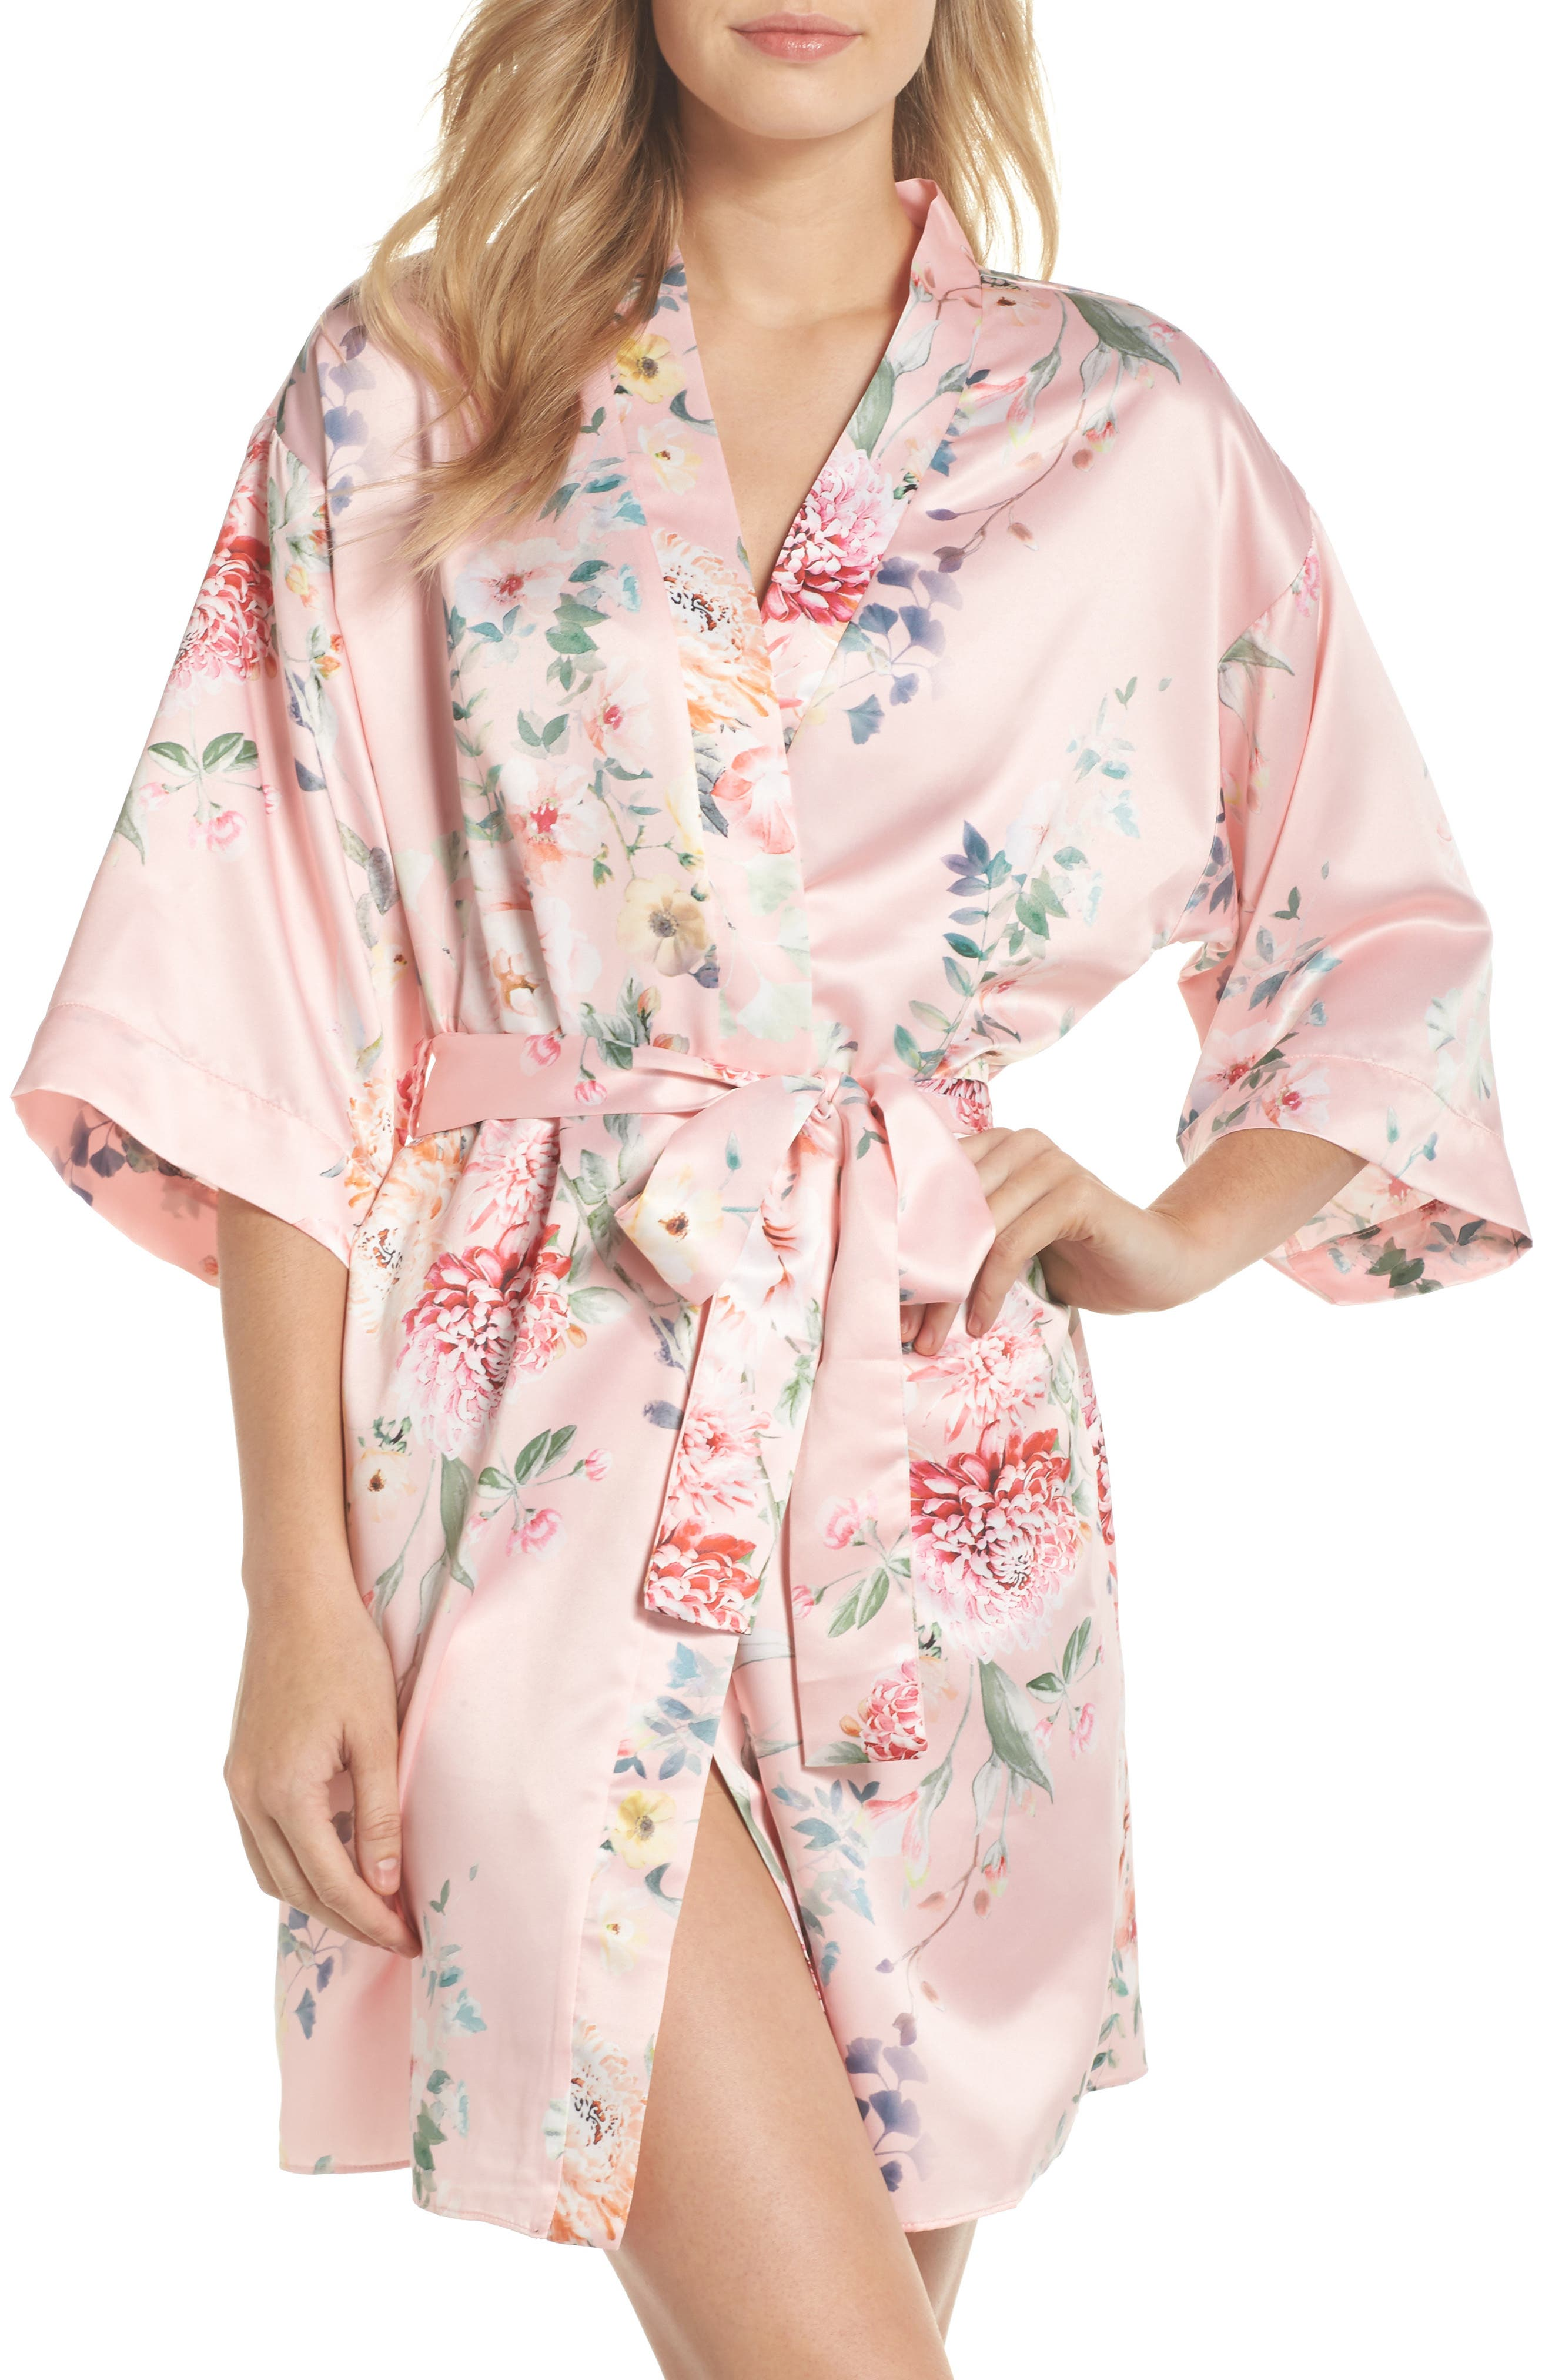 Renata Short Satin Robe,                             Main thumbnail 3, color,